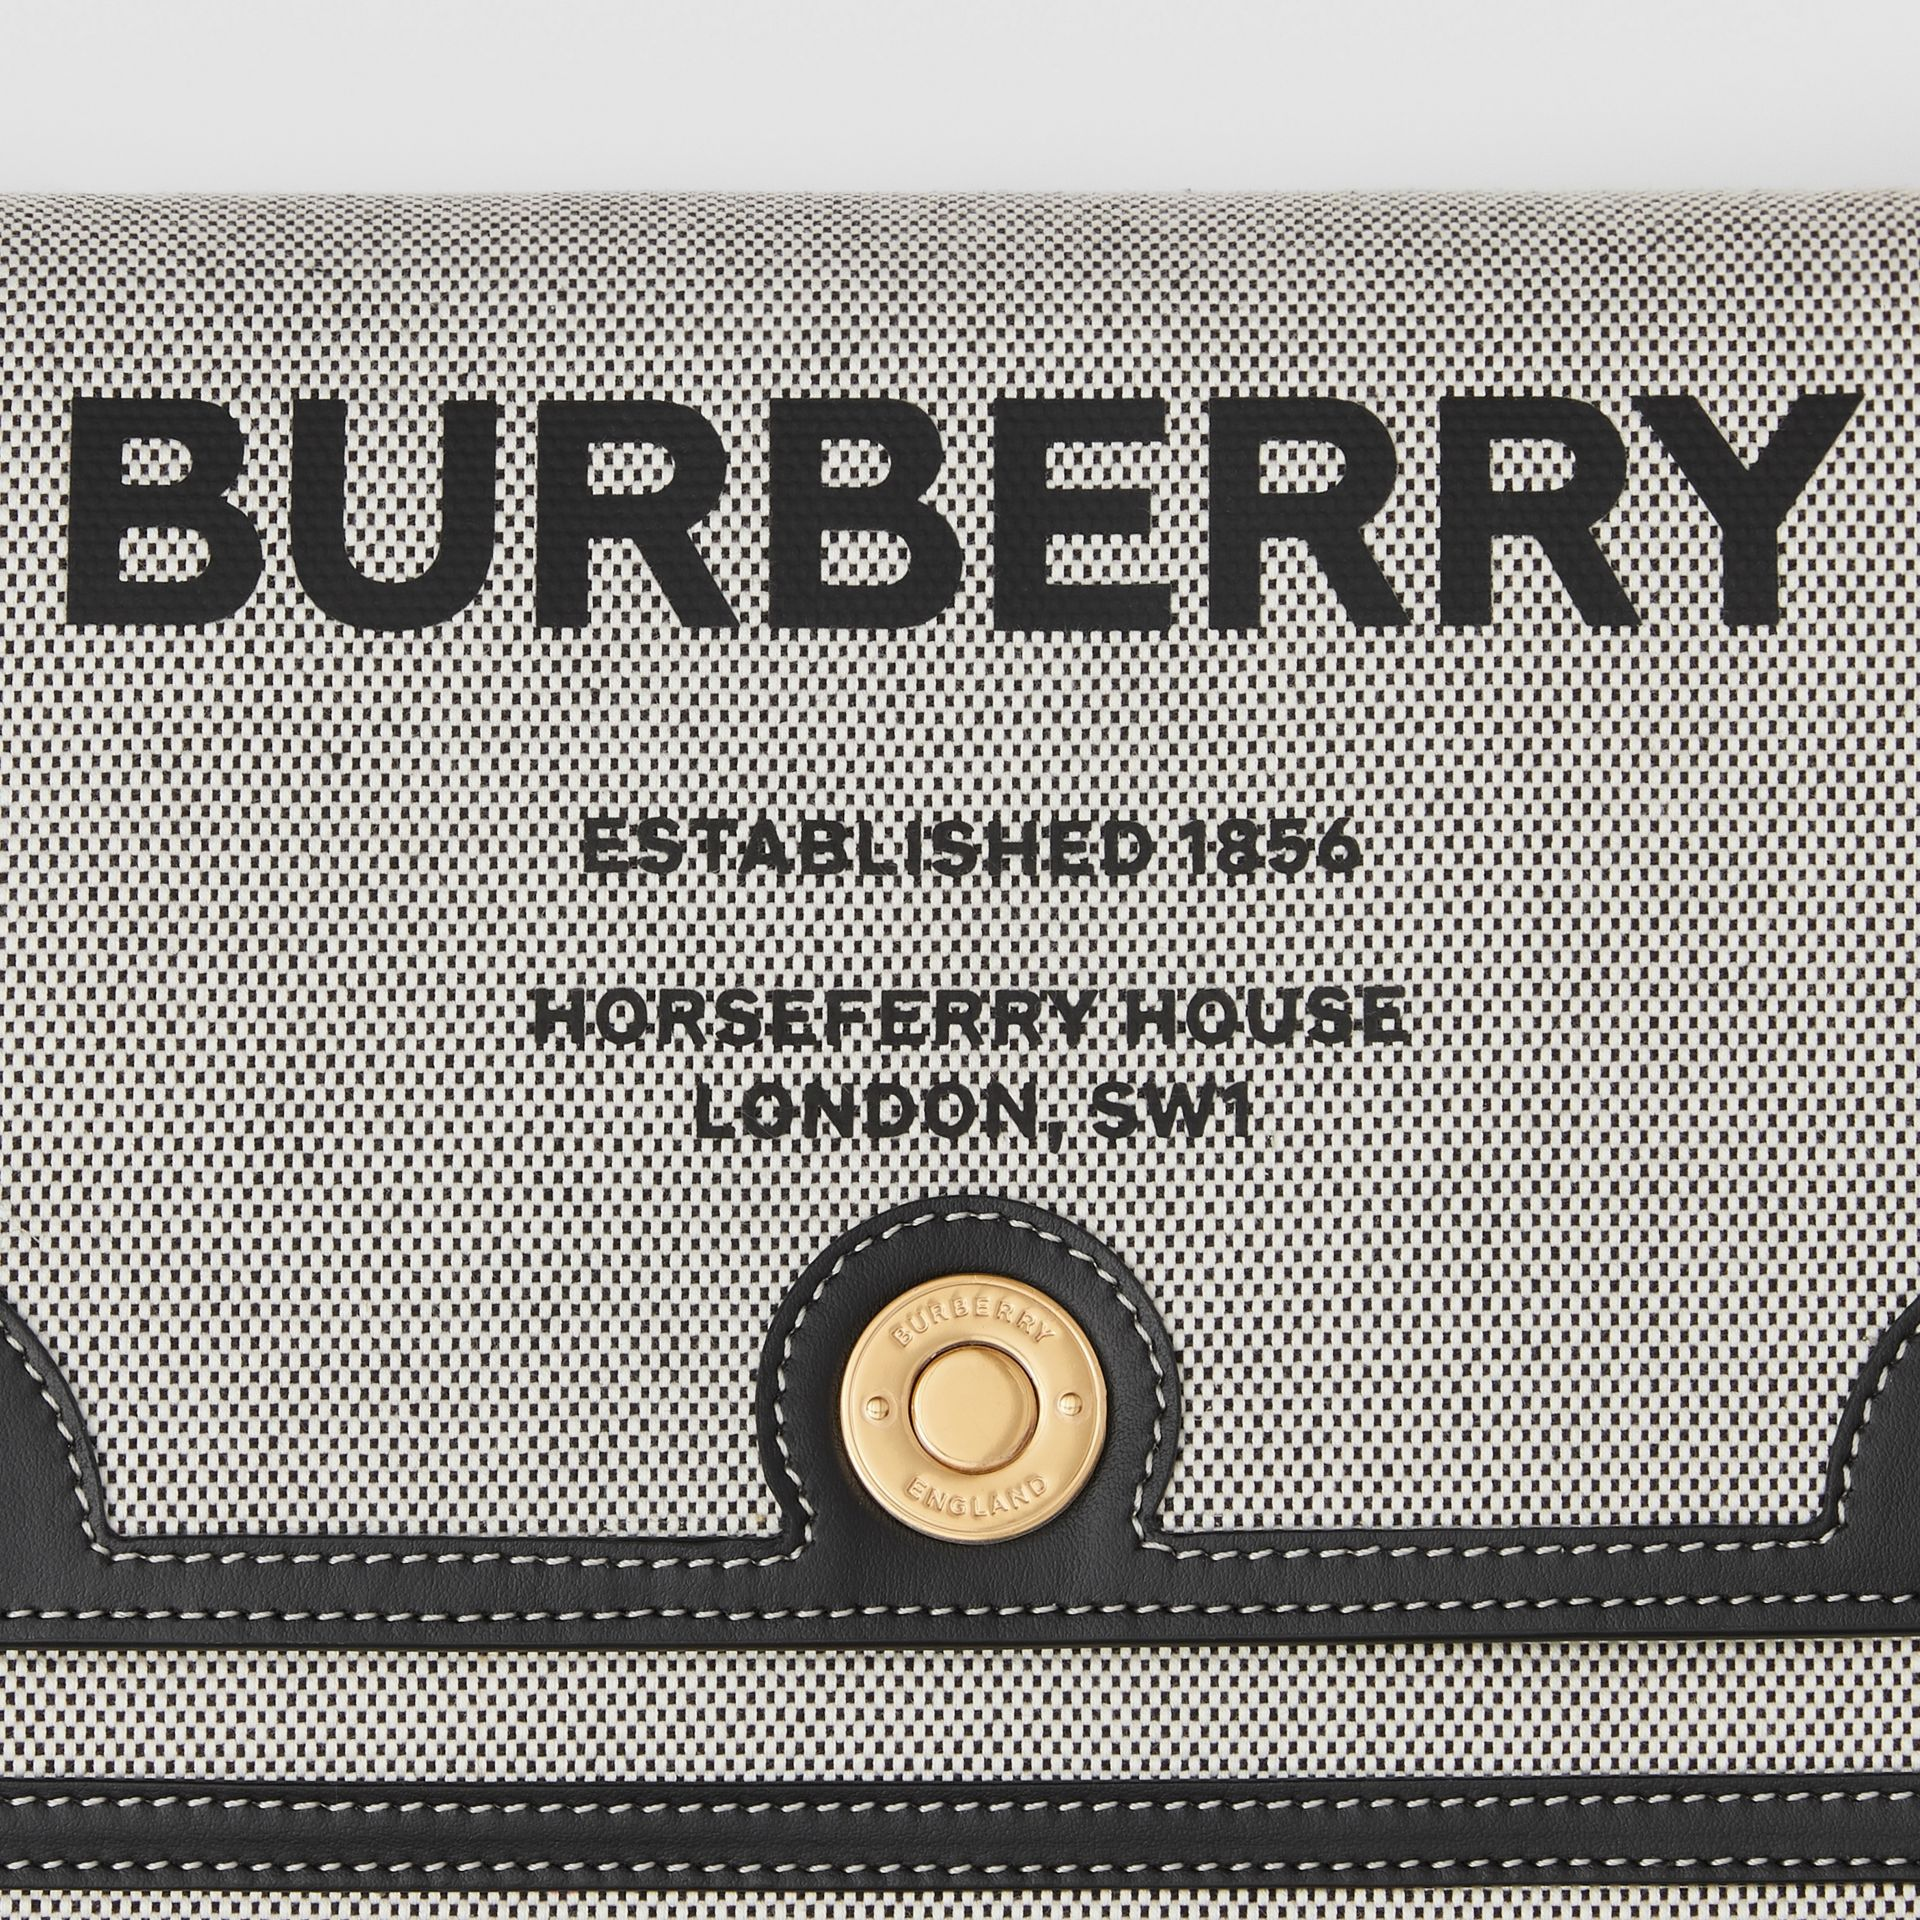 Sac à bandoulière Note en toile Horseferry (Noir/noir/hâle) - Femme | Burberry - photo de la galerie 1